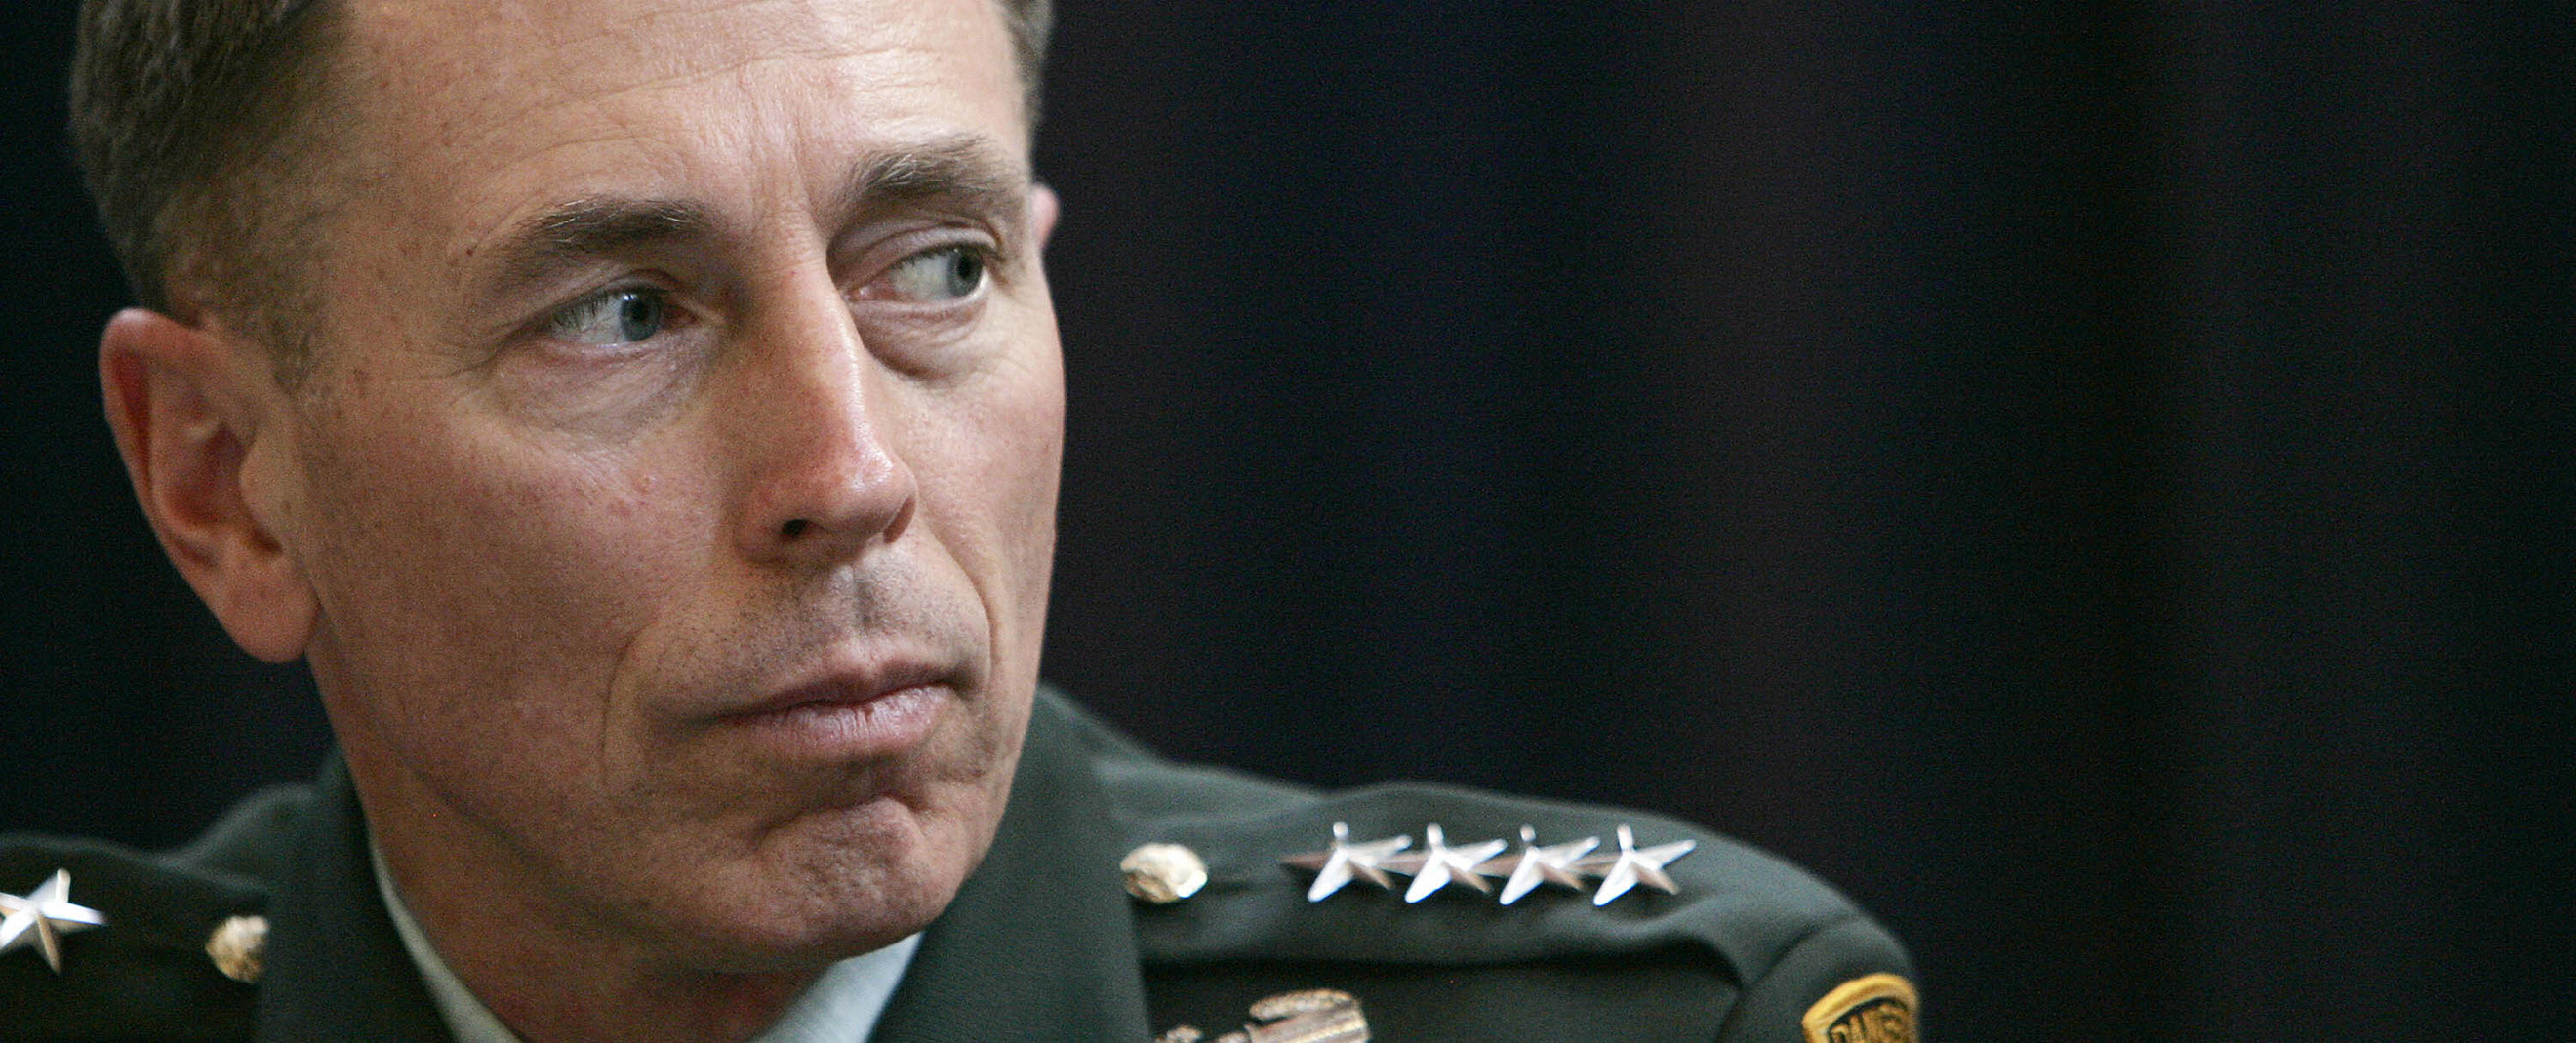 US commander in Iraq General David Petraeus talks at the press conference in London, 18 September 2007, on the current state of affairs for US troops in Iraq. Petraeus was to hold talks with British Prime Minister Gordon Brown on Tuesday, during a stopover on his way back to Baghdad from Washington.  AFP PHOTO/SHAUN CURRY (Photo credit should read SHAUN CURRY/AFP/Getty Images)